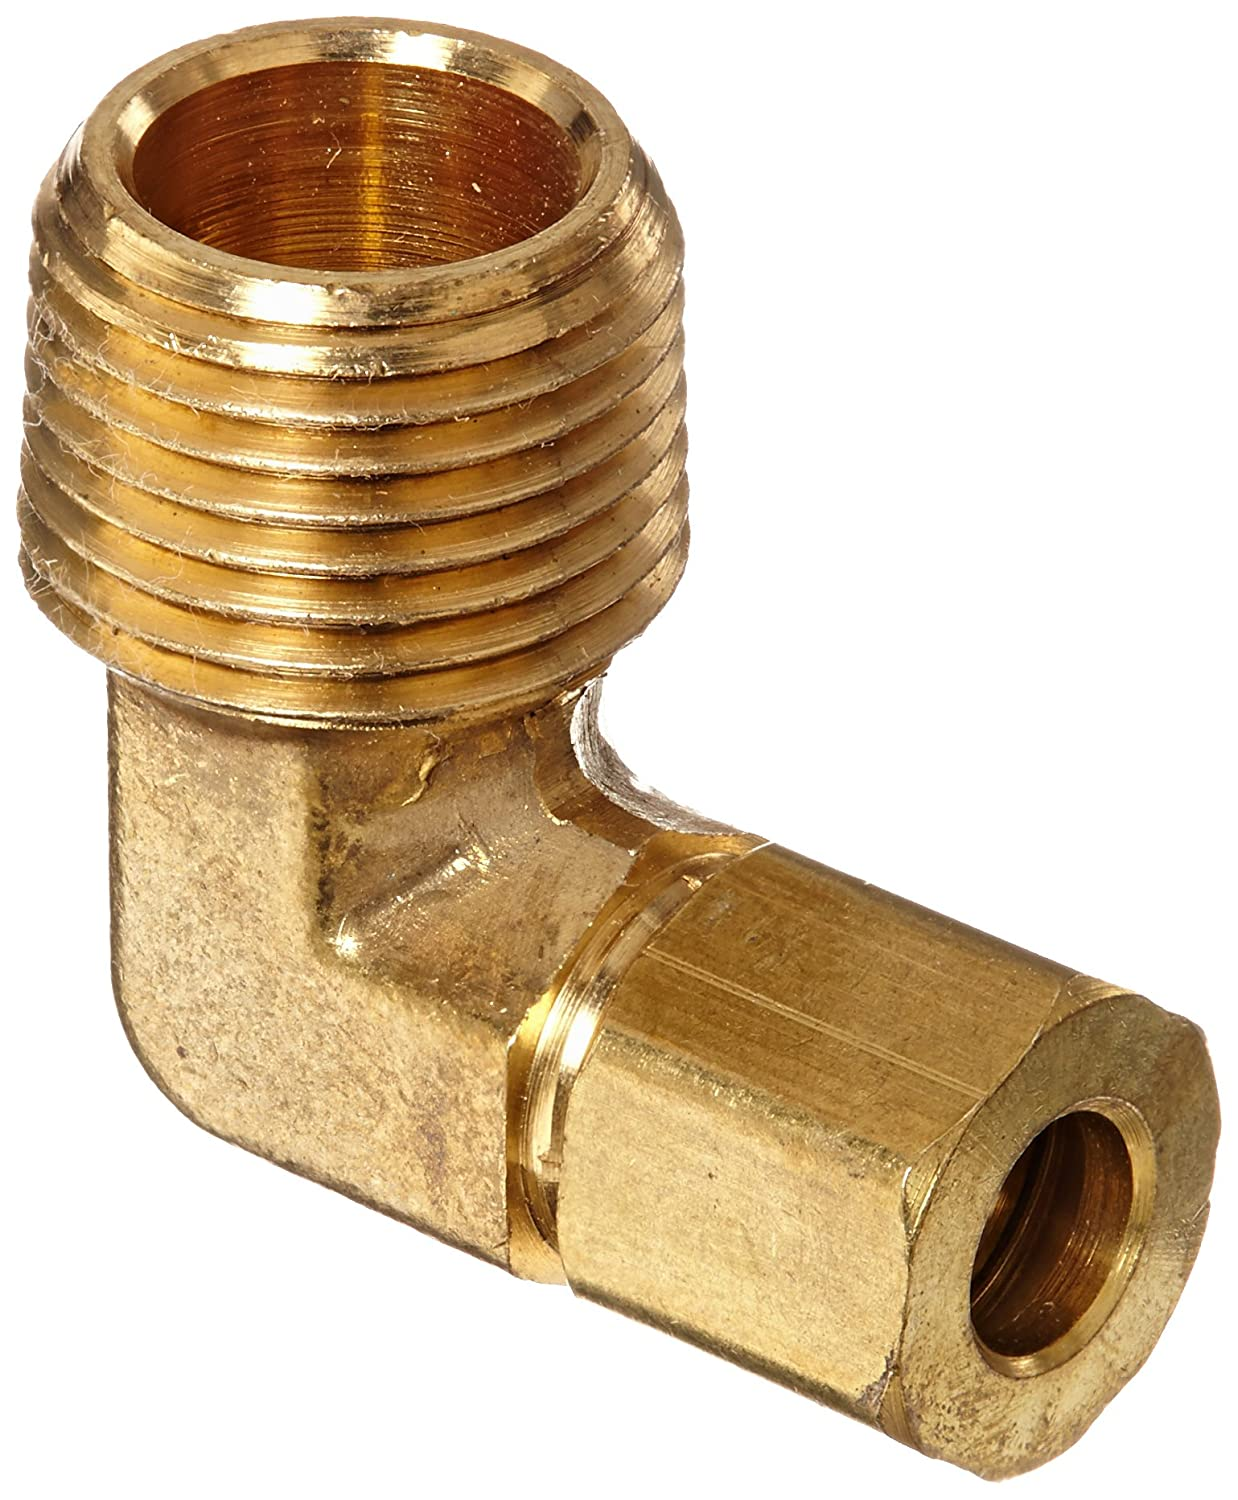 Anderson Metals 50069 Brass Compression Tube Fitting, 90 Degree Elbow, 1/4